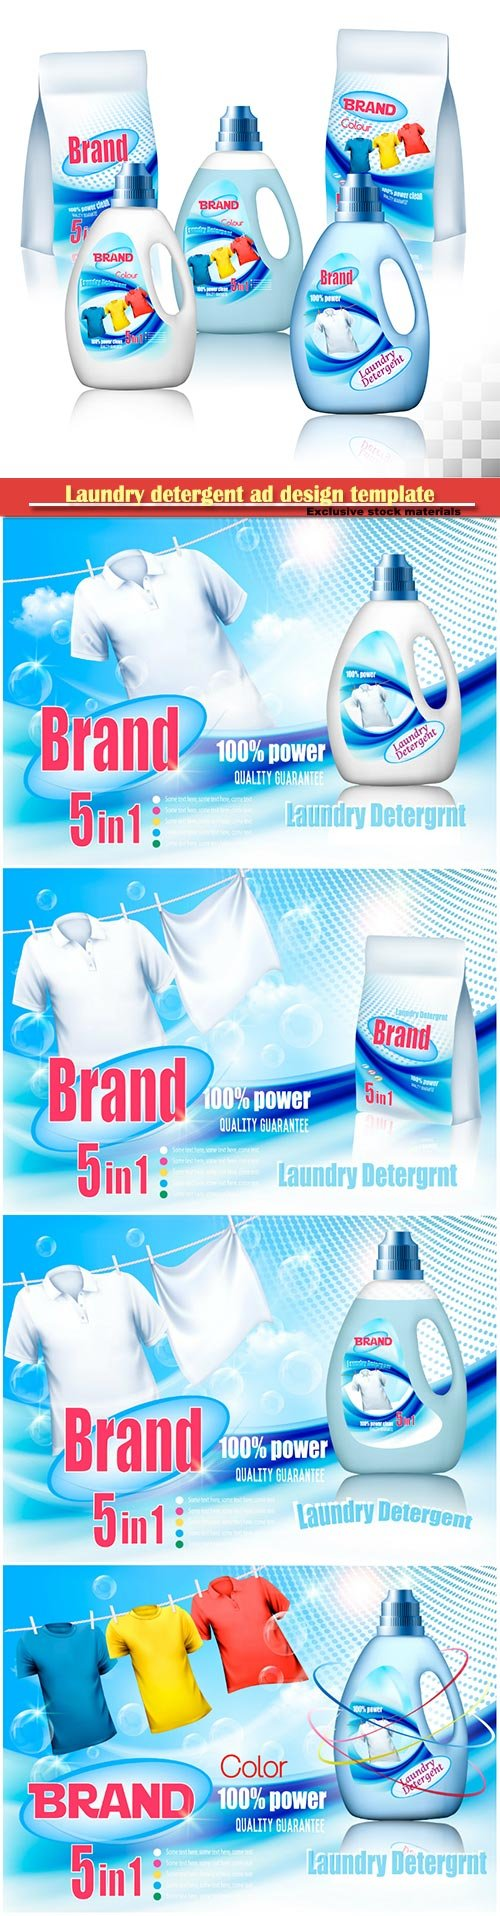 Laundry detergent ad design template, plastic bottle and colorful shirts on rope